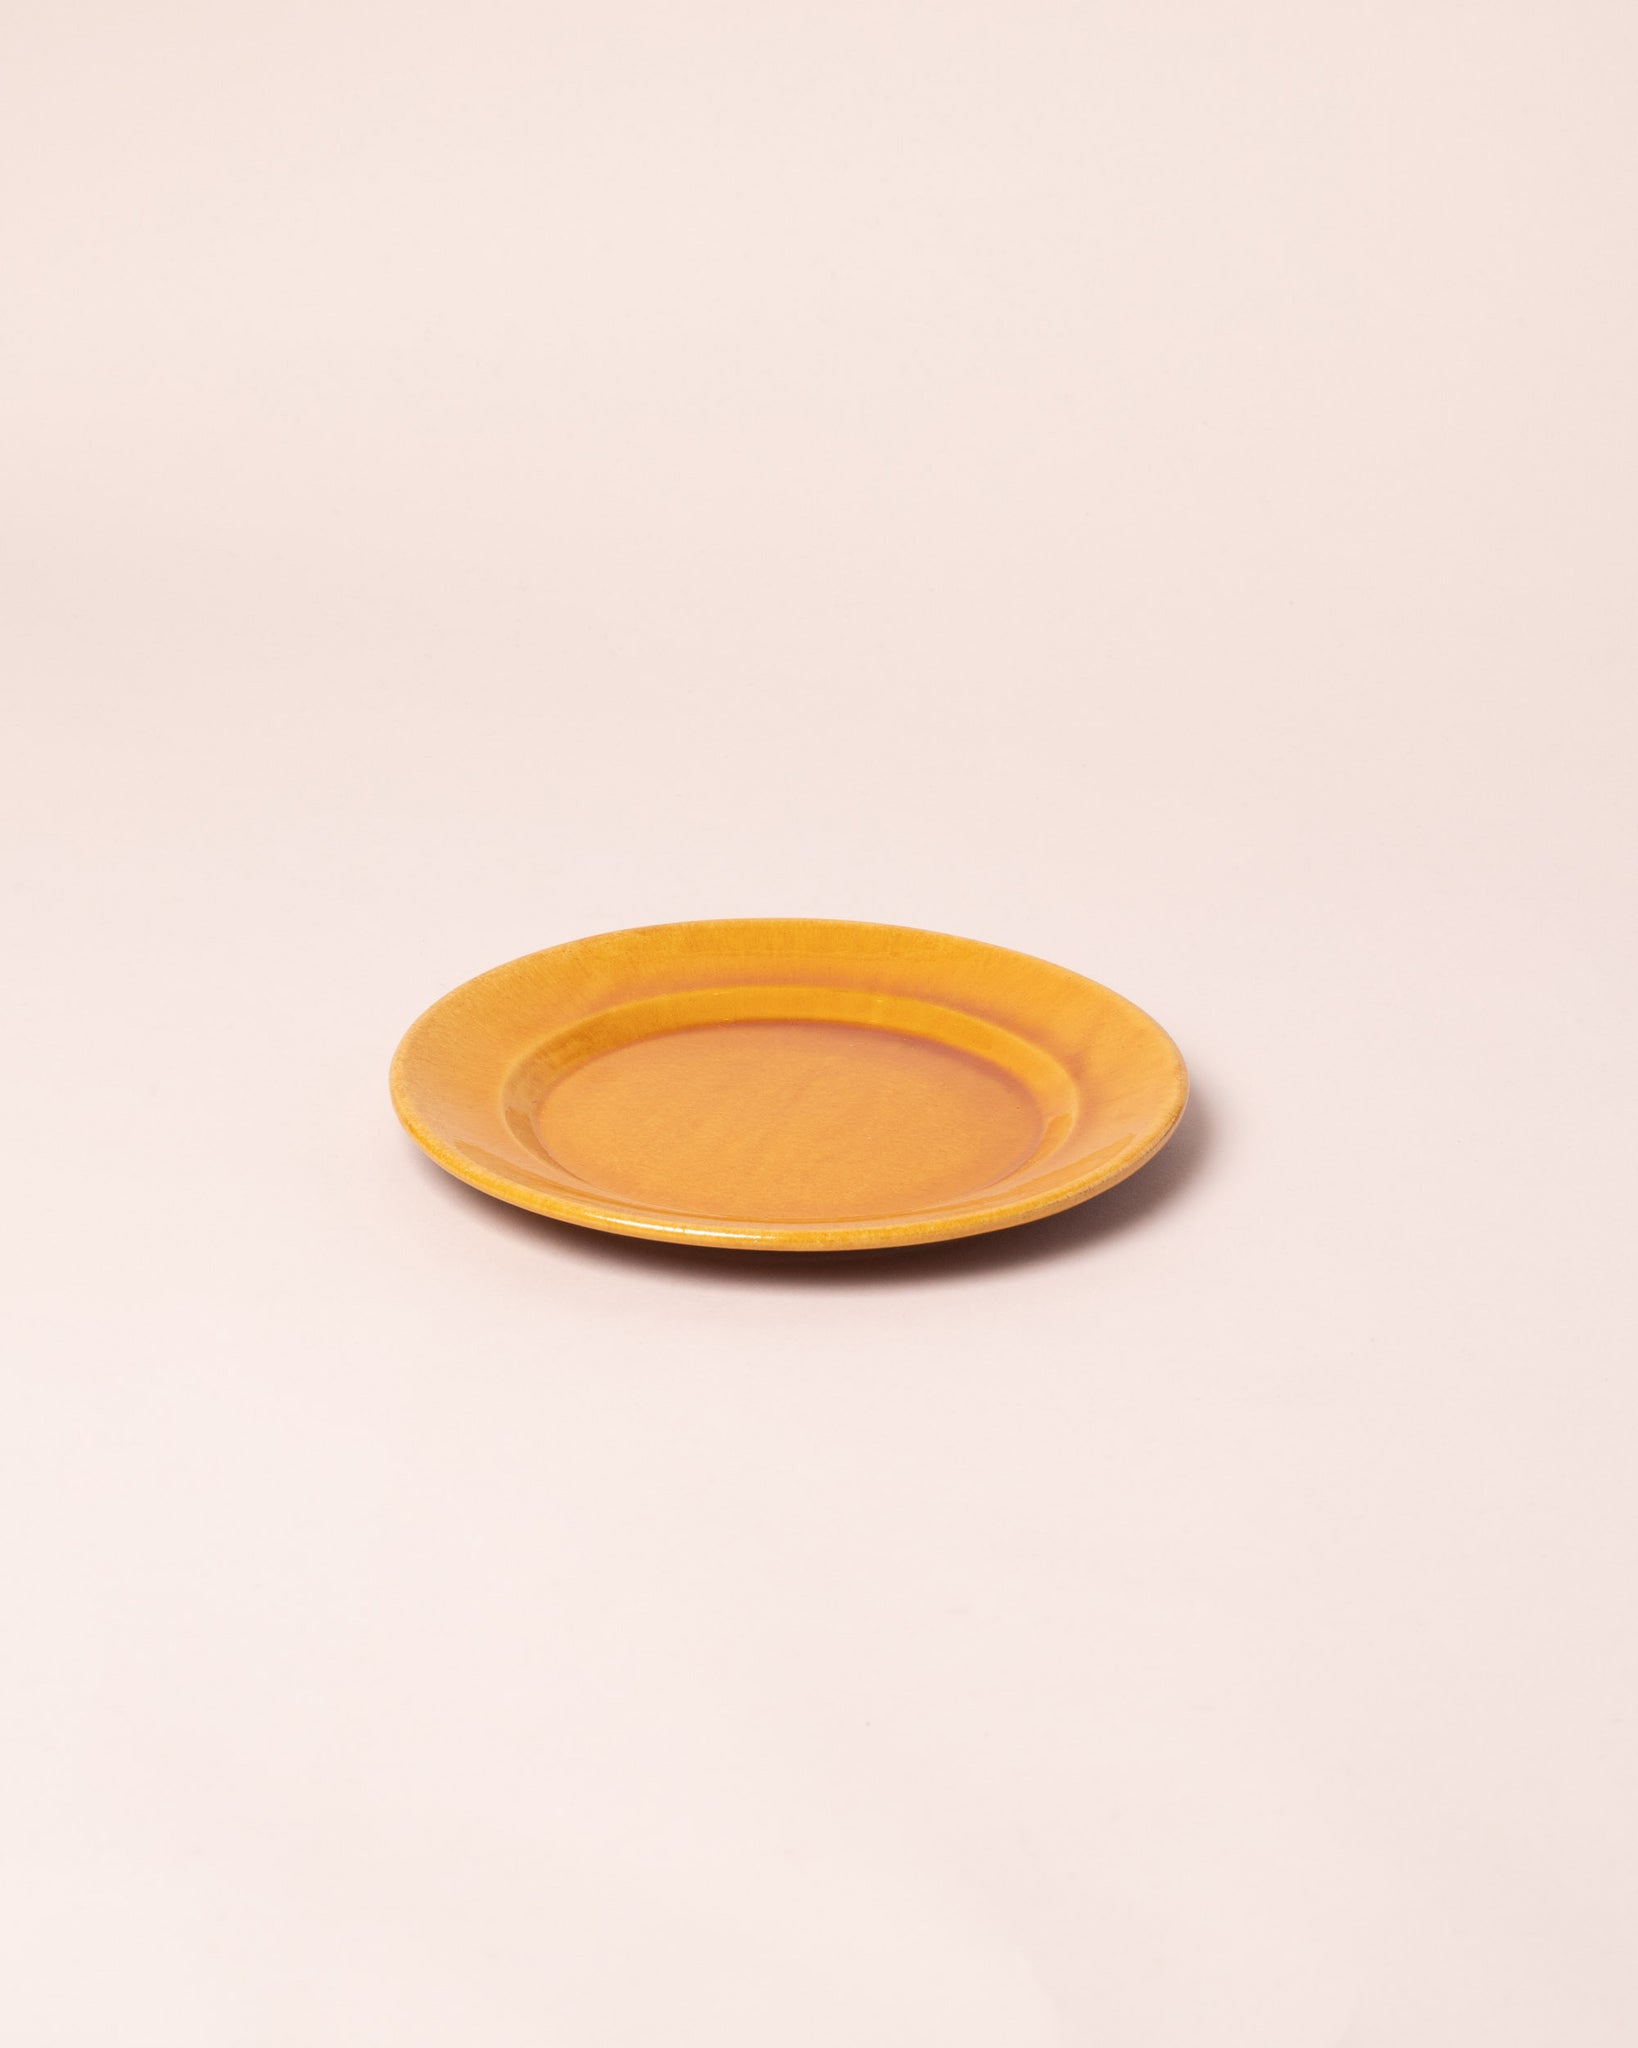 La Ceramica Small Dish caramel yellow